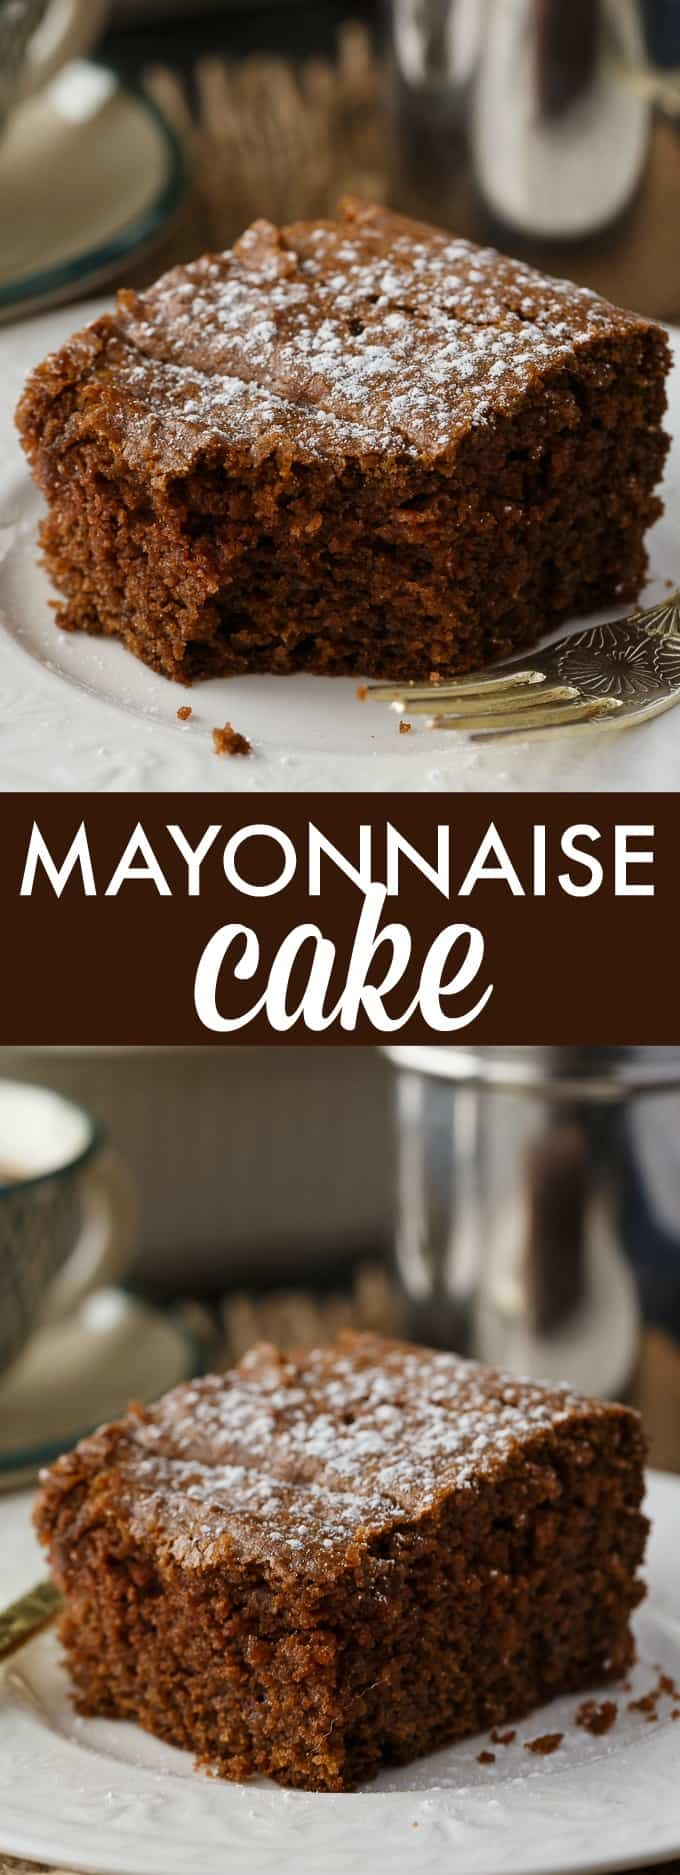 Mayonnaise Cake - Super moist and delicious. Use mayonnaise instead of eggs in this yummy chocolate cake recipe.